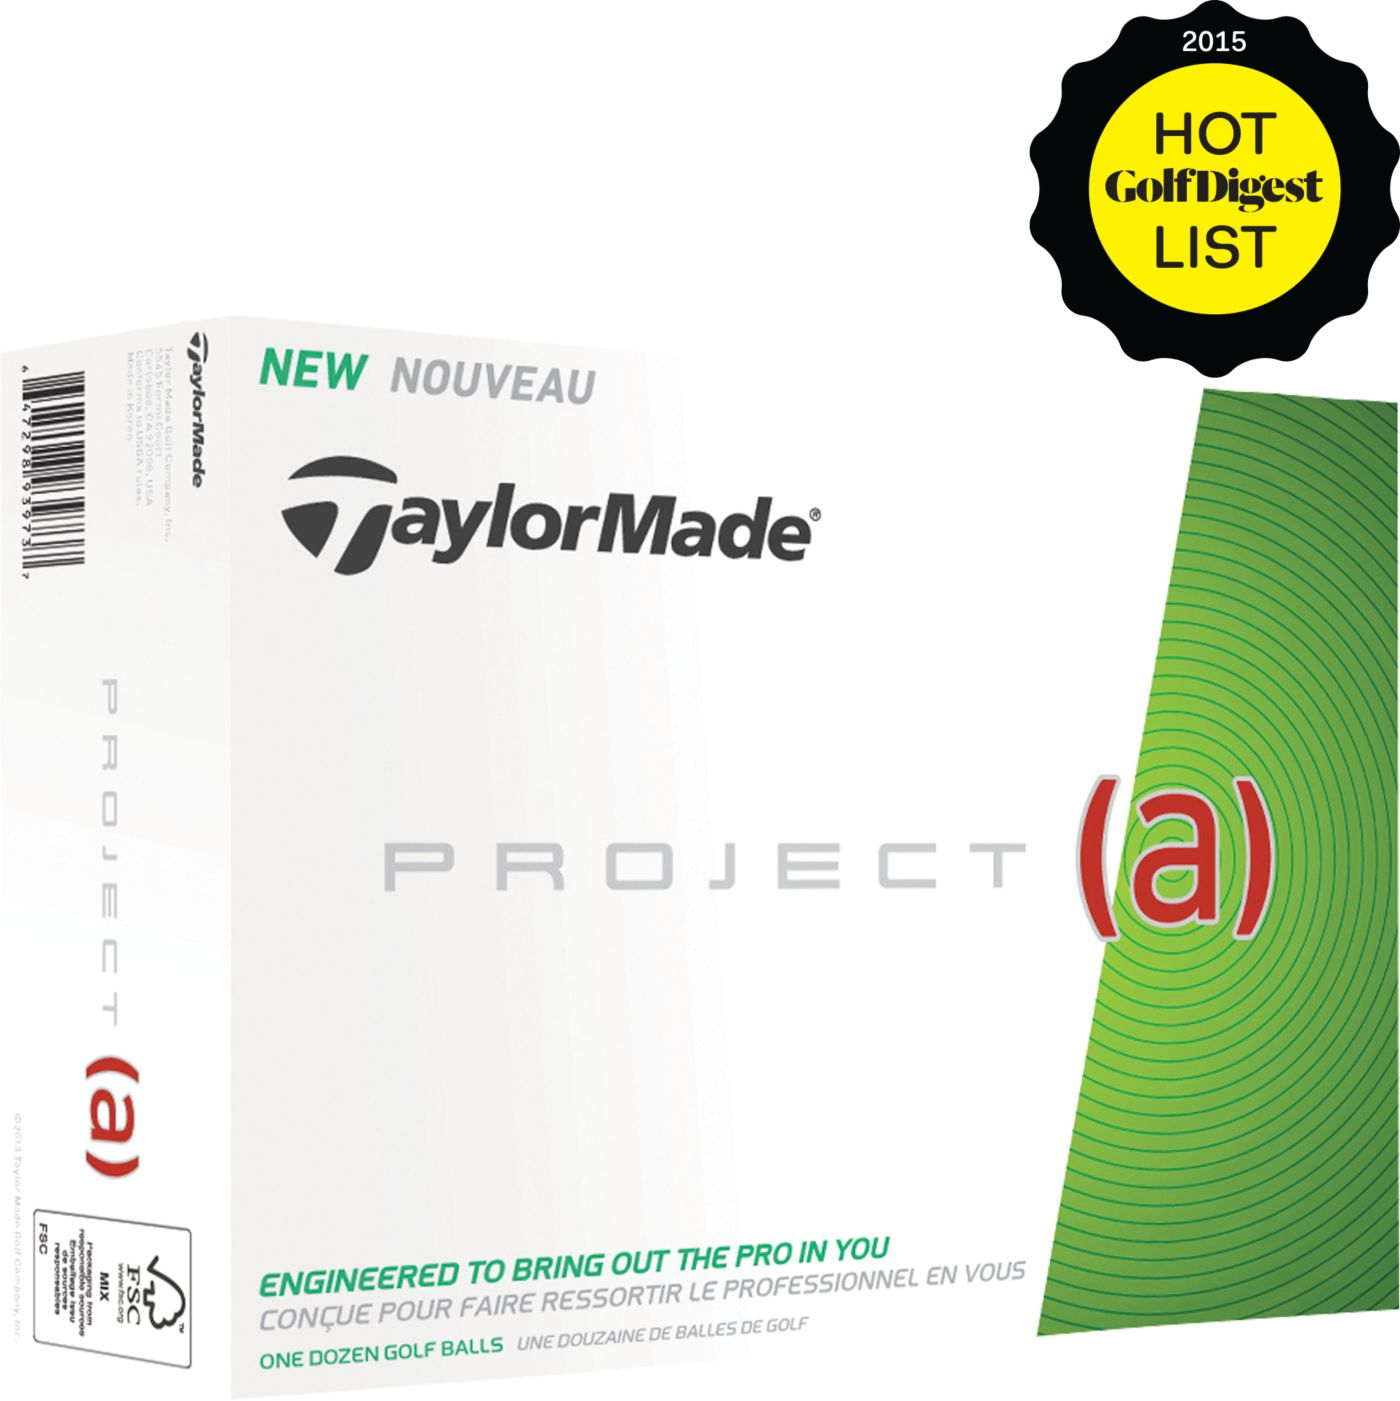 TaylorMade Project (a) Personalized Golf Balls